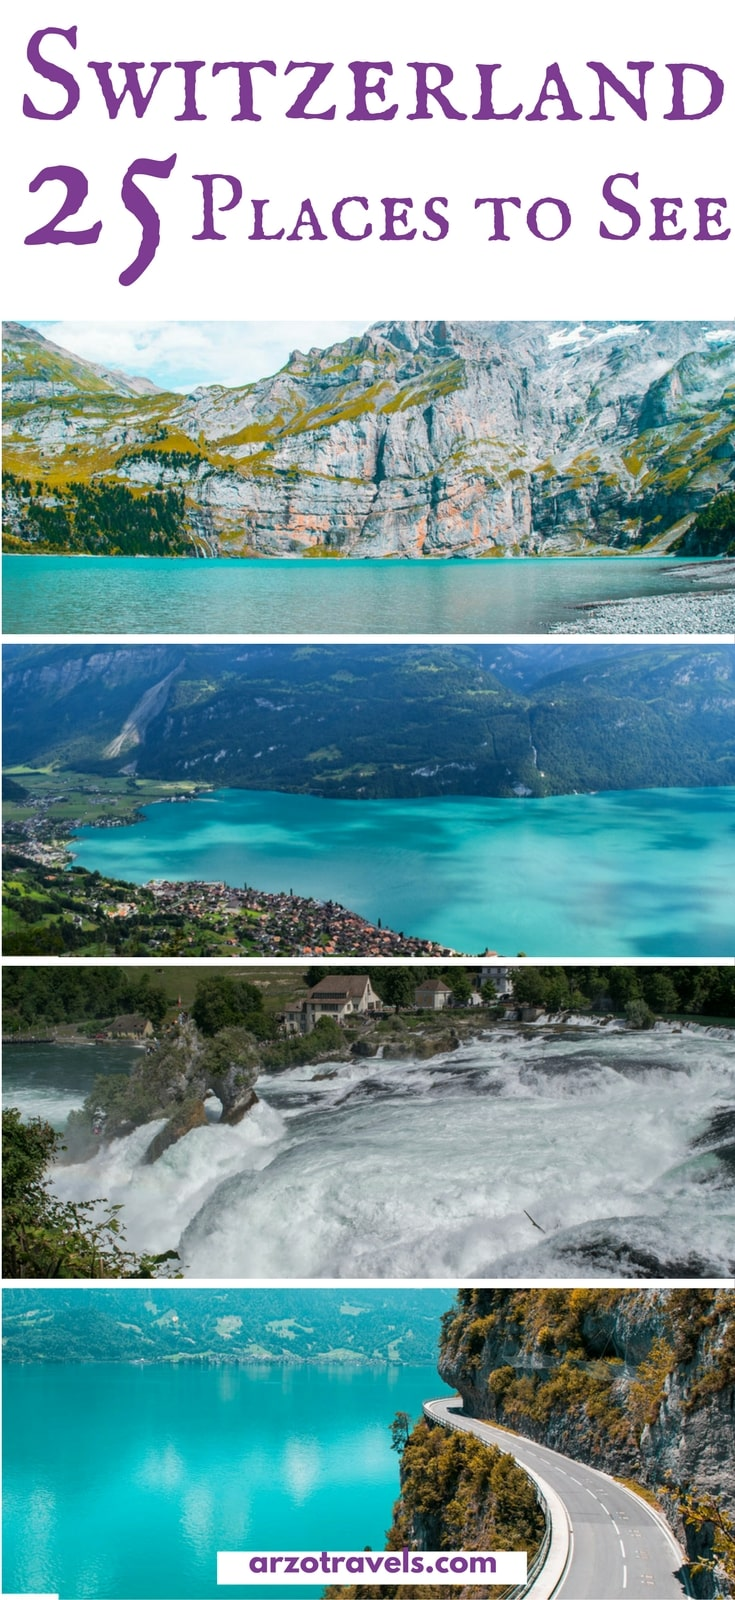 25 Best Accent Nails Ideas On Pinterest: What To Do In Switzerland? 25 Best Things To Do In Switzerland